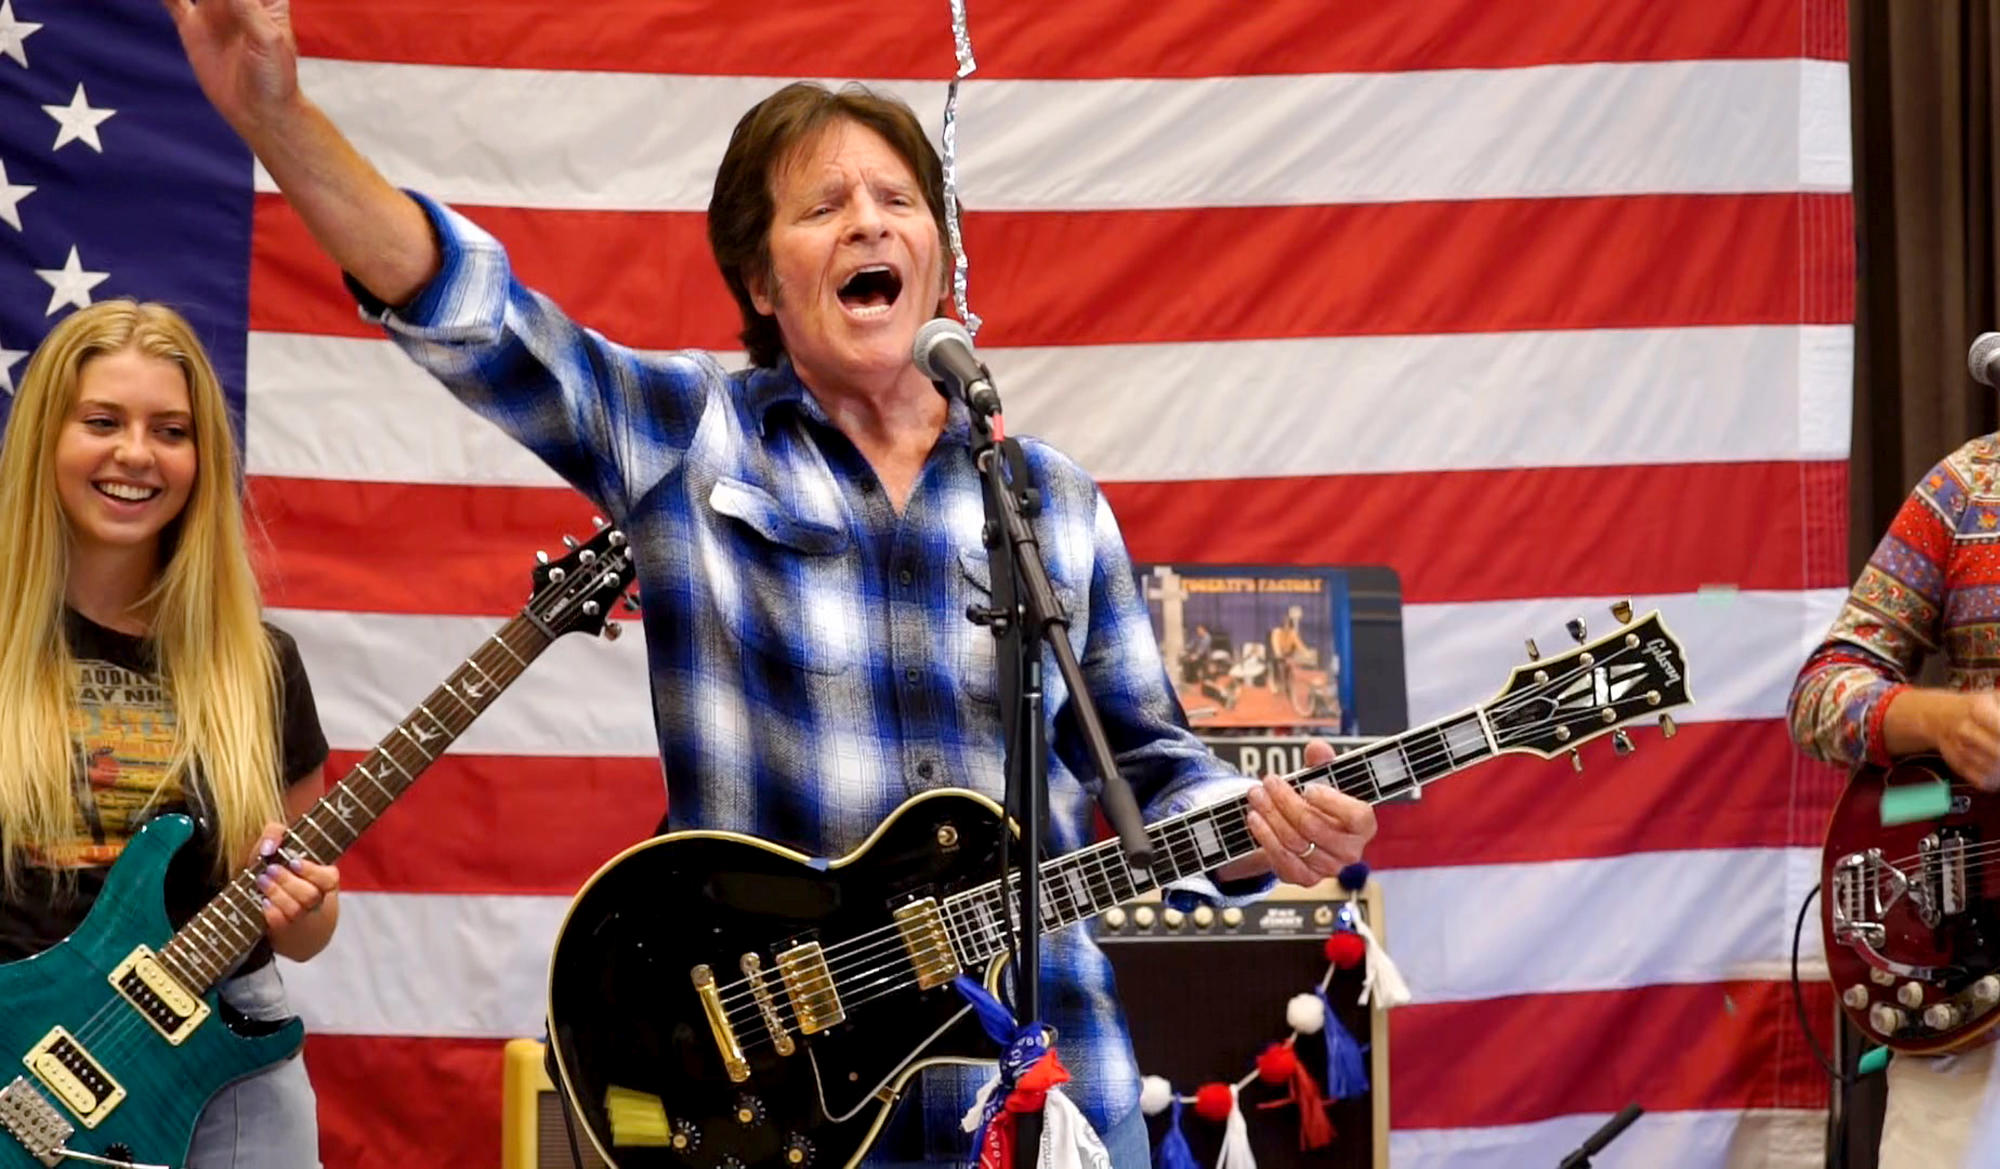 John Fogerty Is Still Trying to Get the Country to Understand His Lyrics